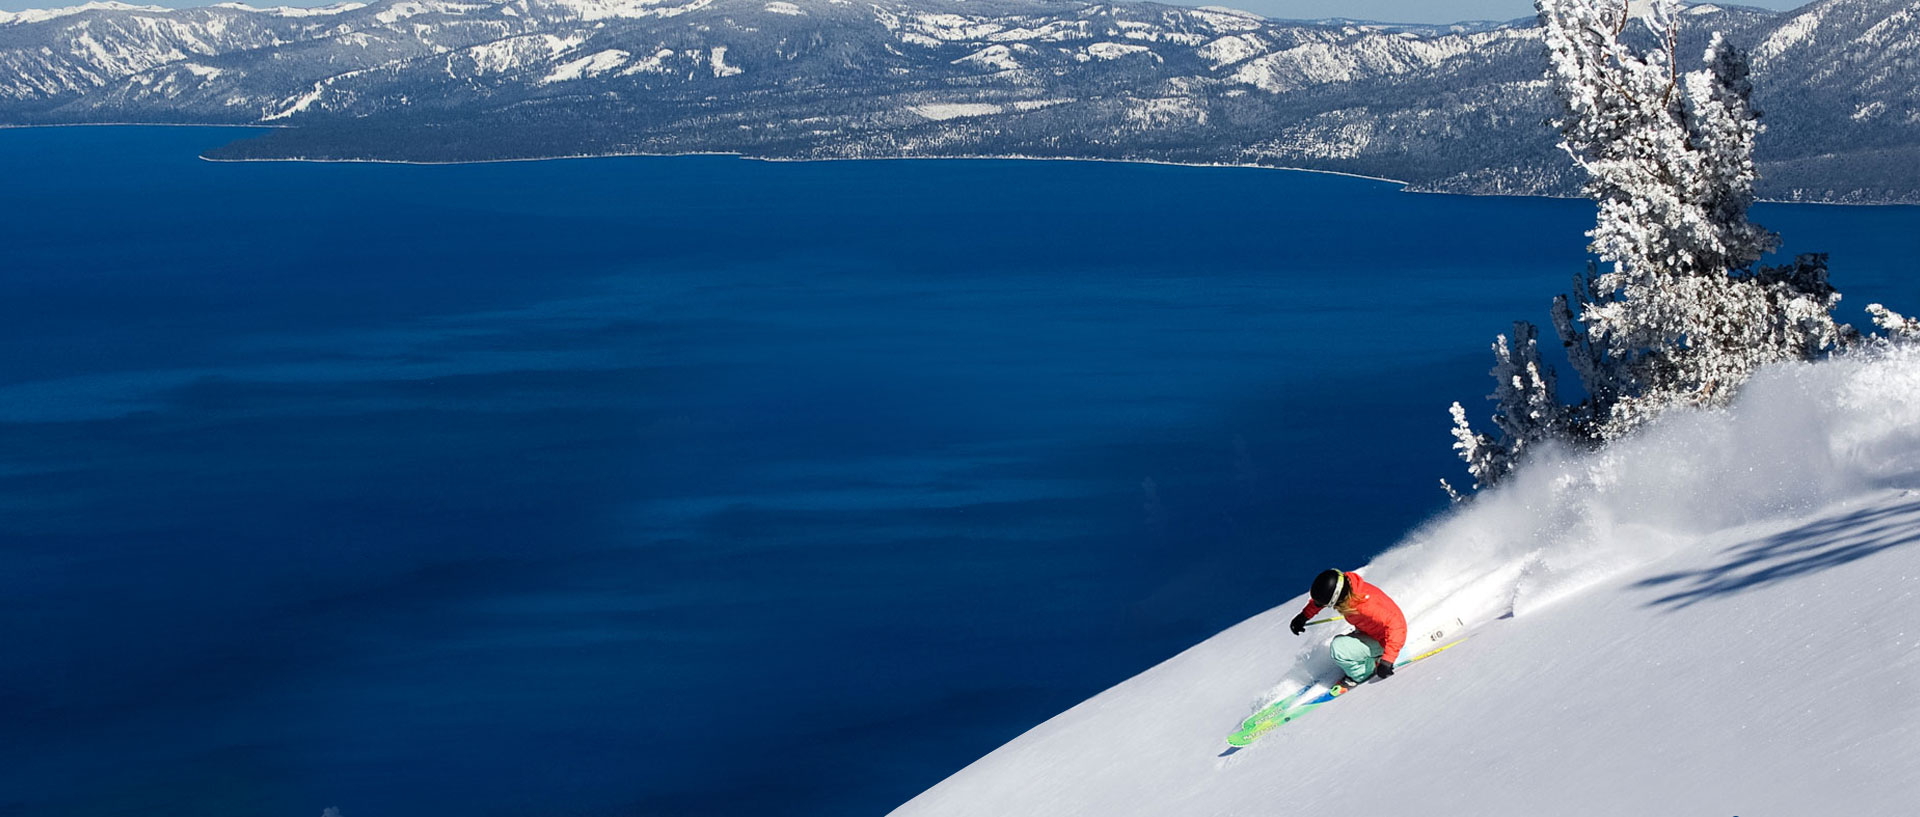 ski lake tahoe | your resource for tahoe ski resorts and winter